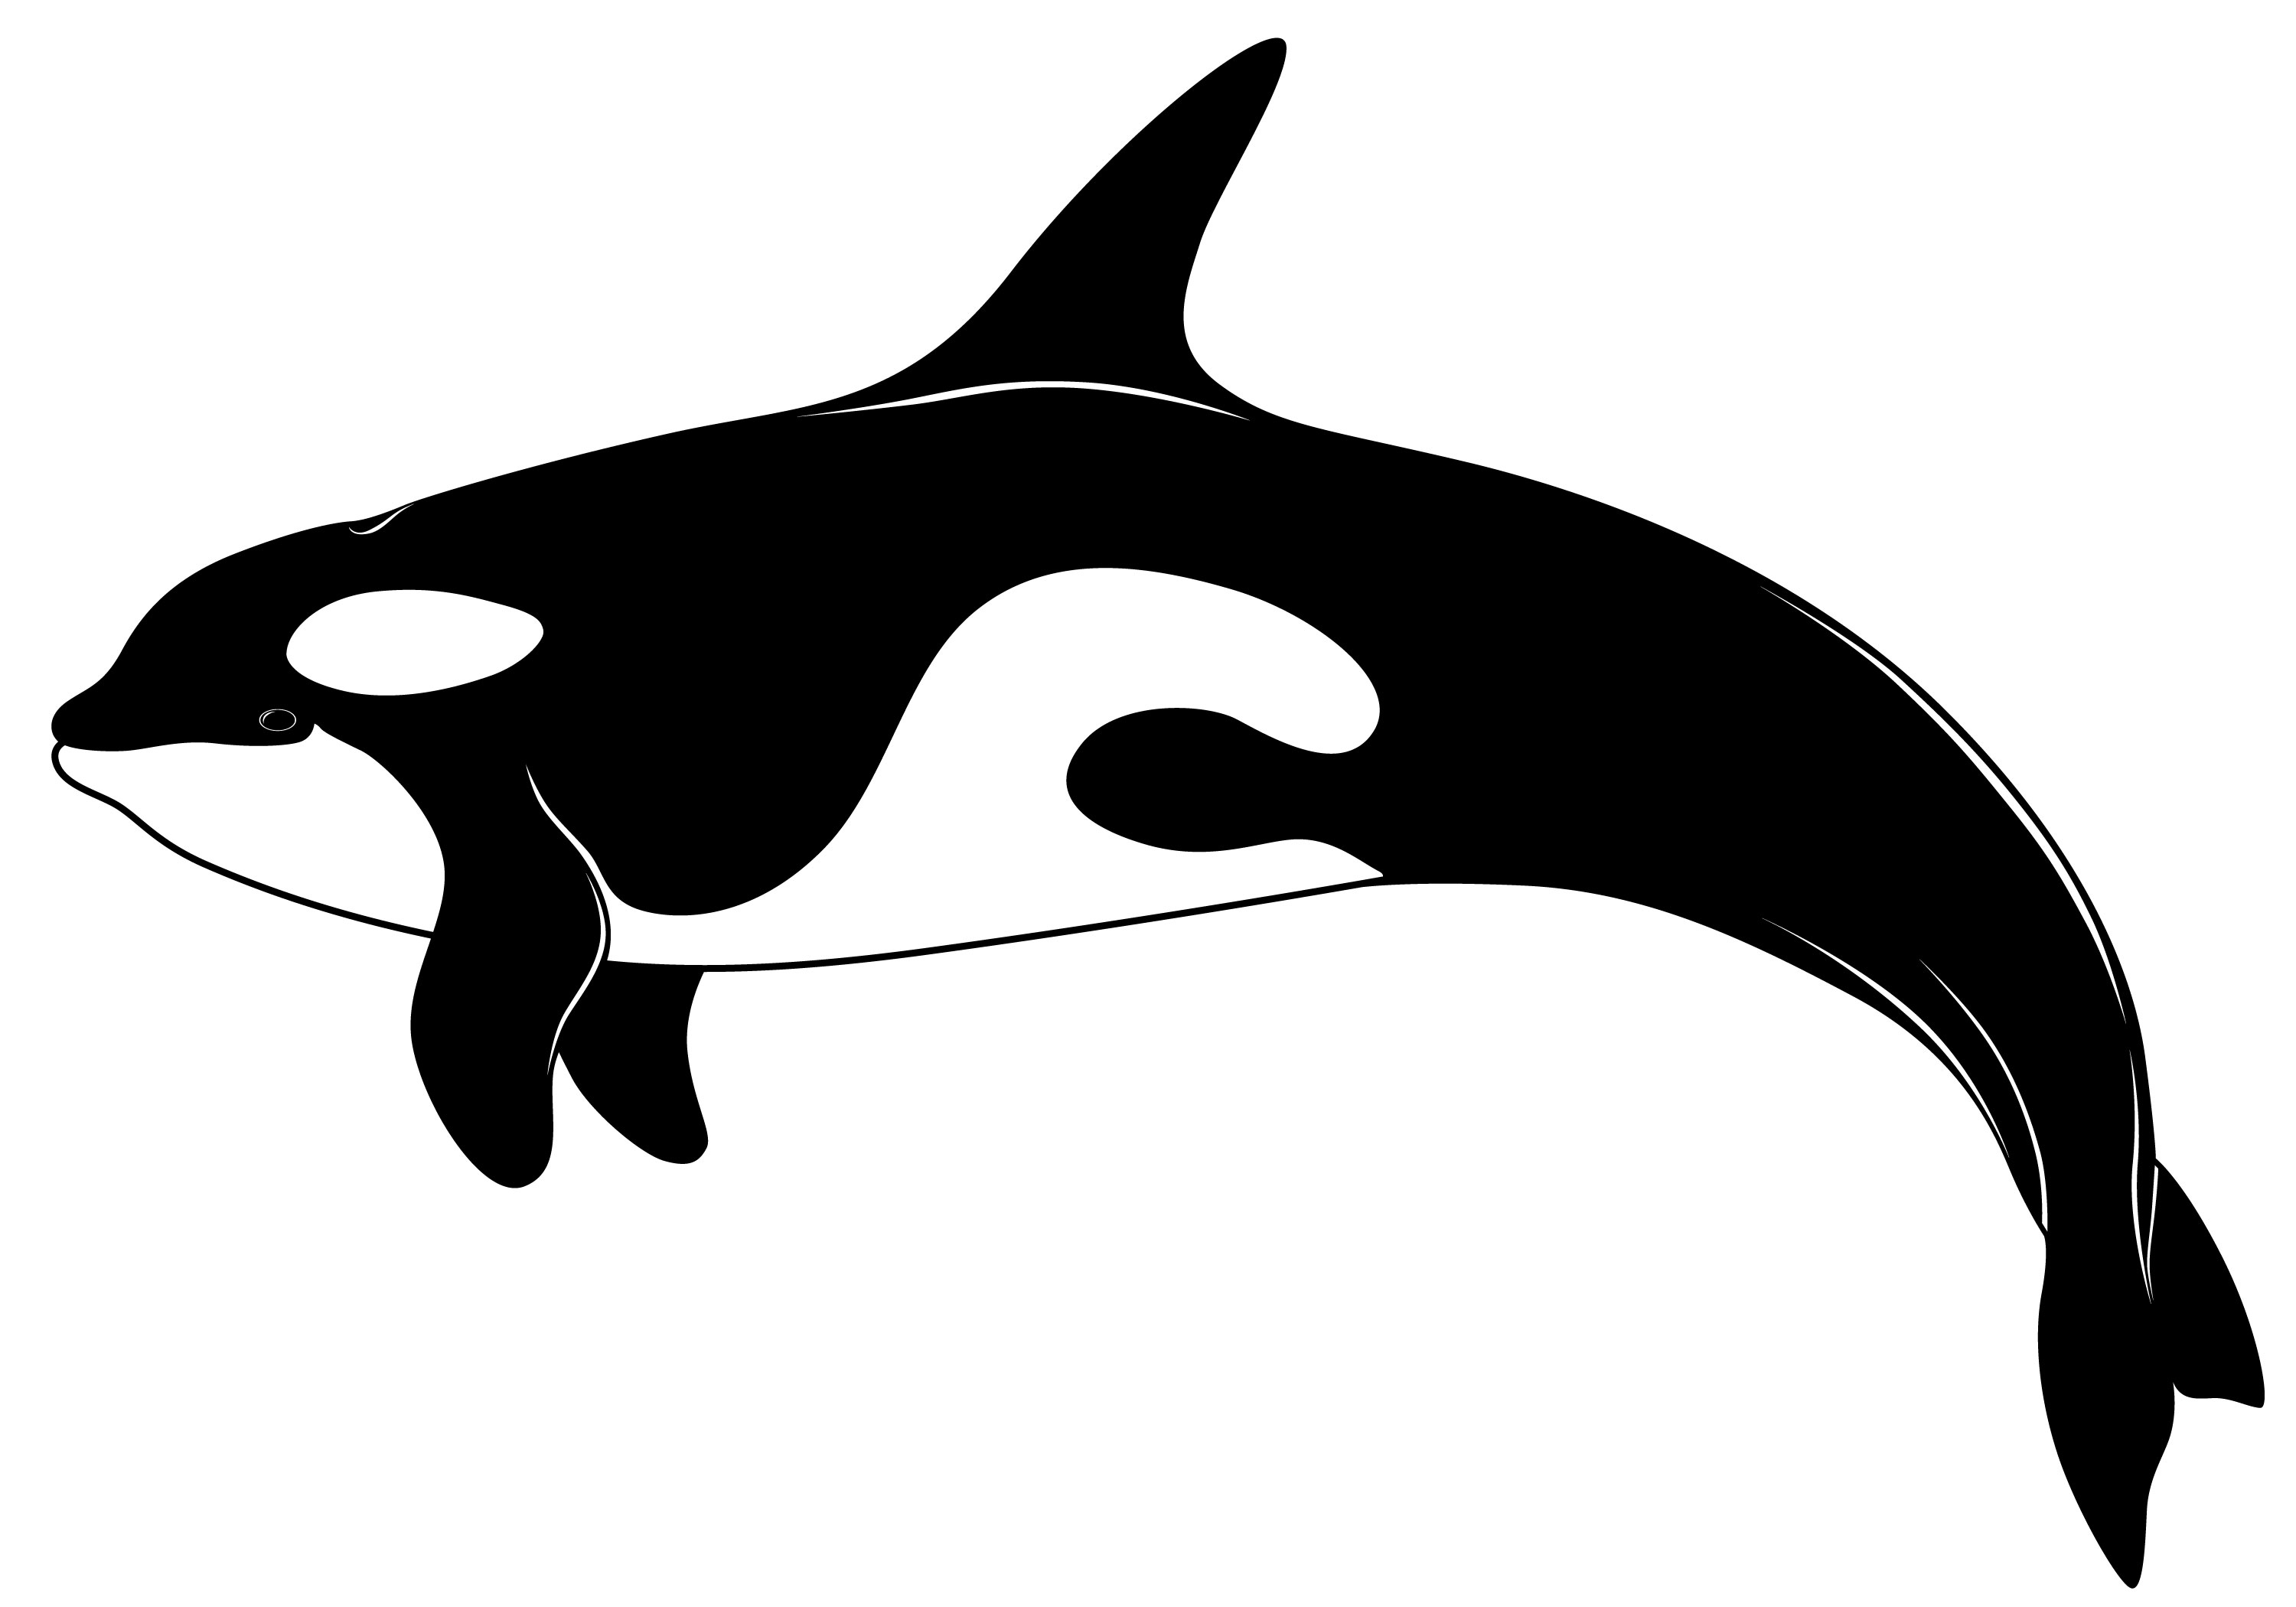 Orca clipart #4, Download drawings